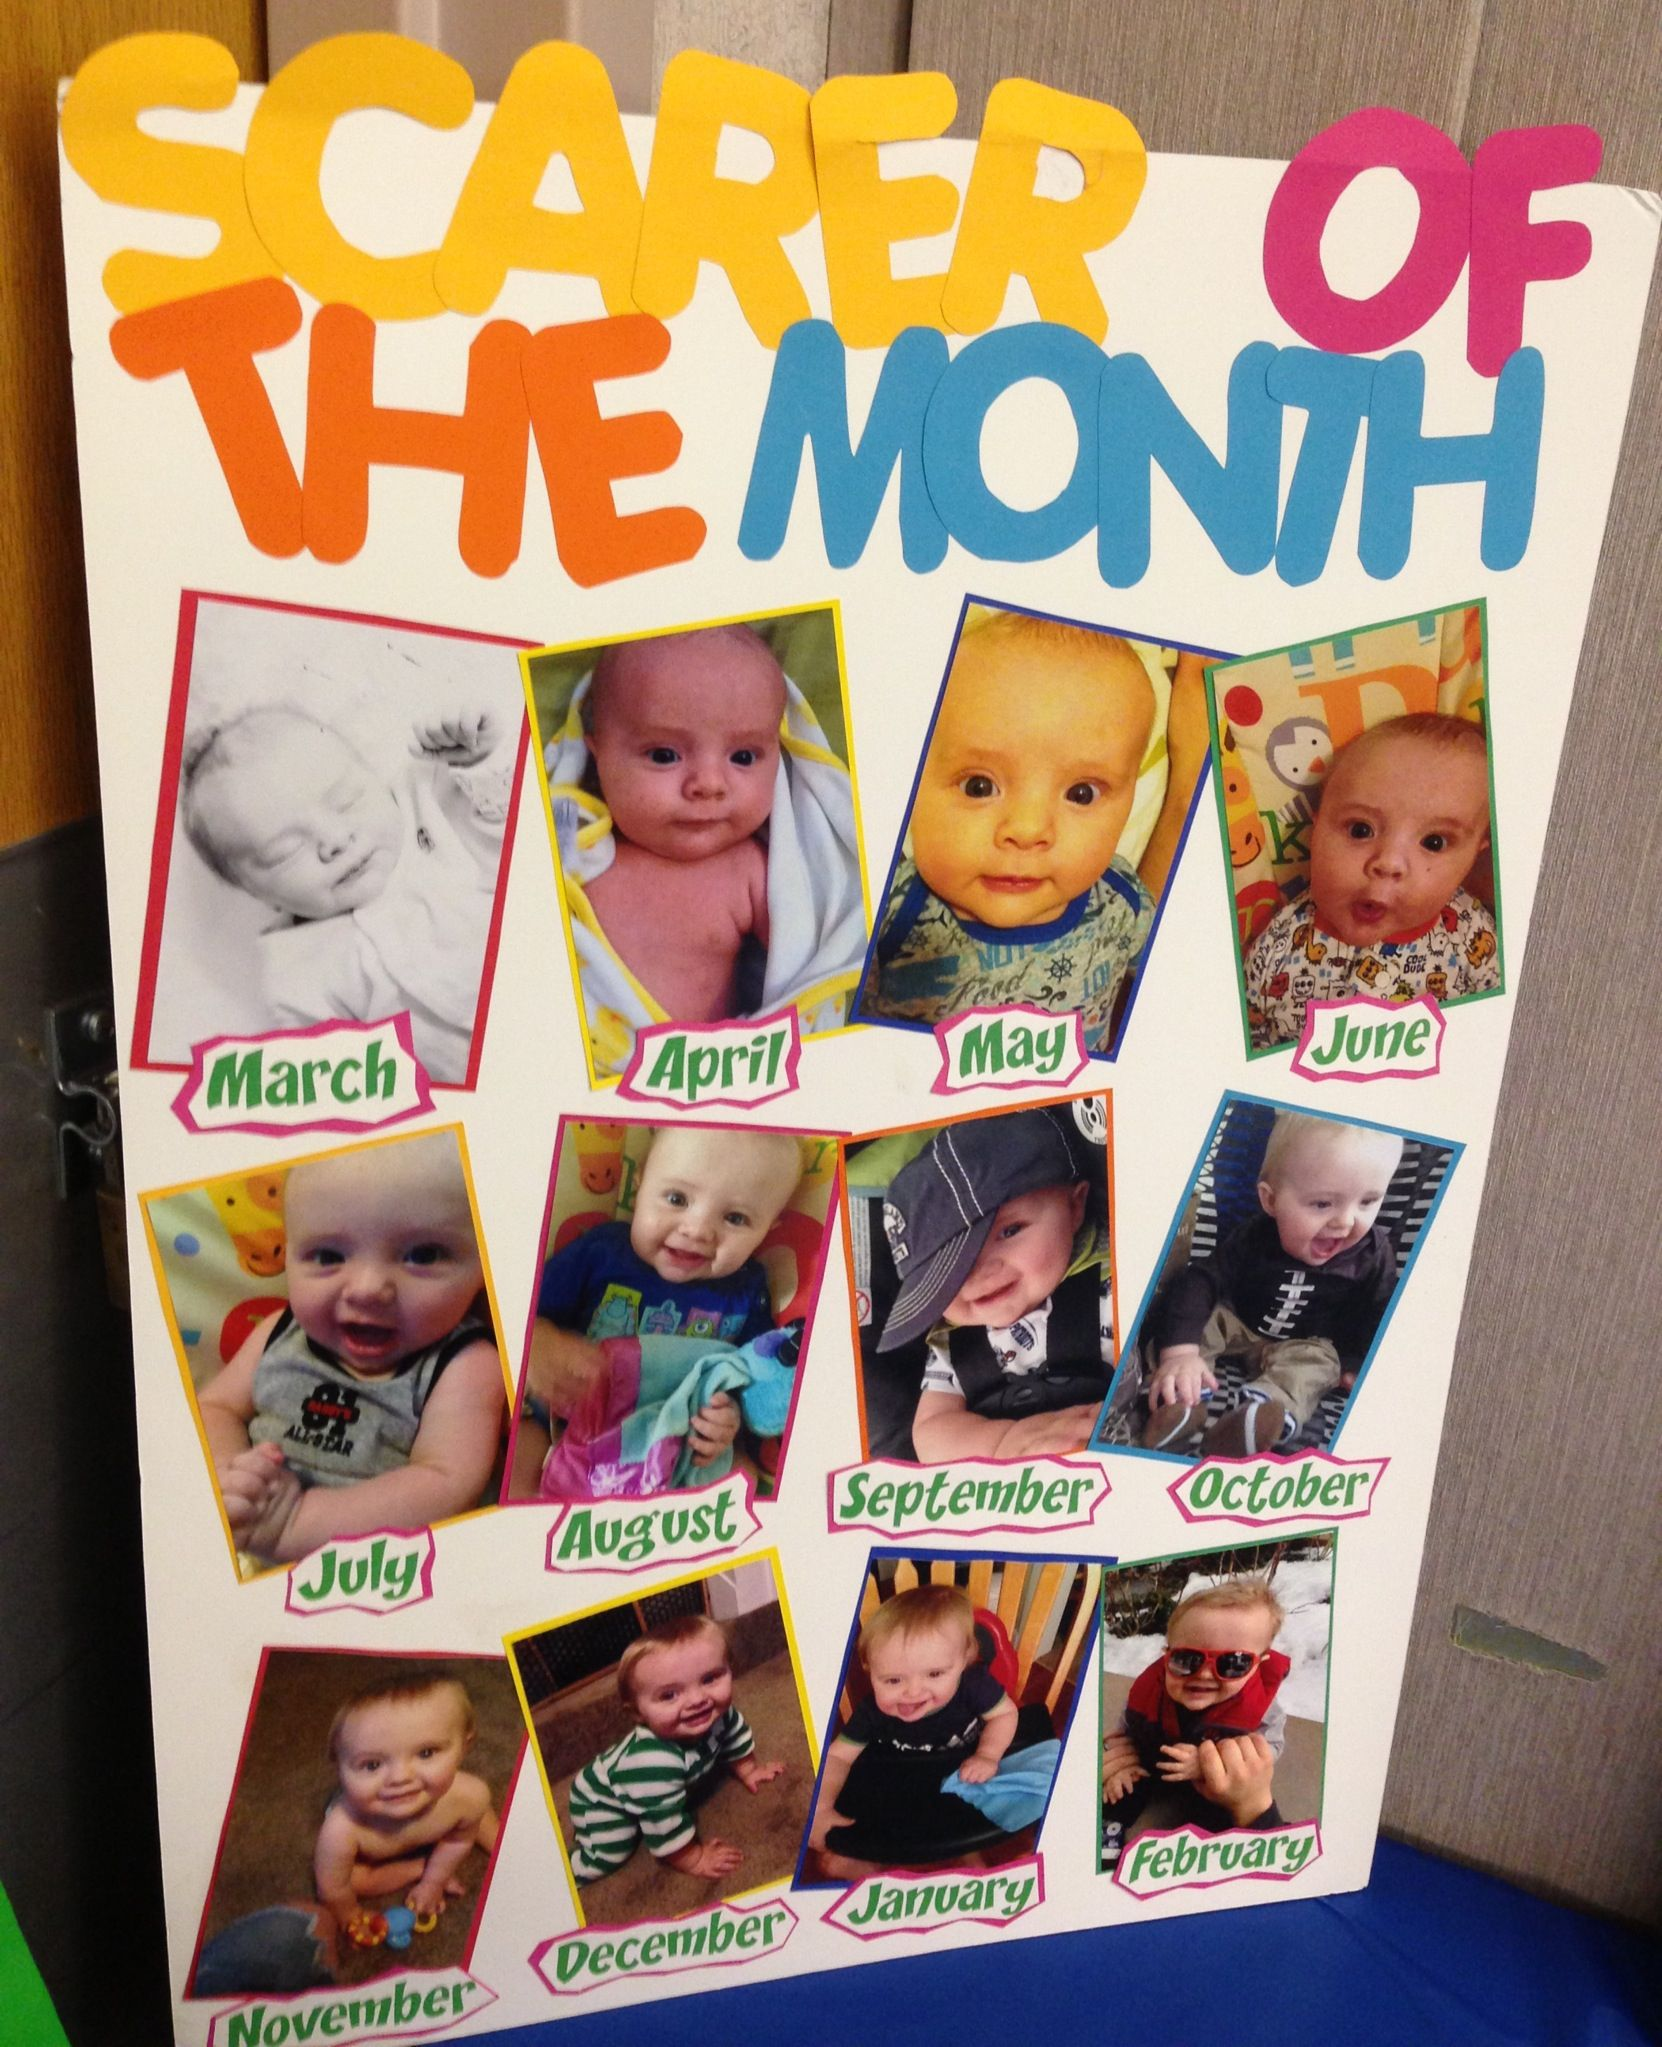 Monsters Inc First Birthday Party Scarer Of The Month